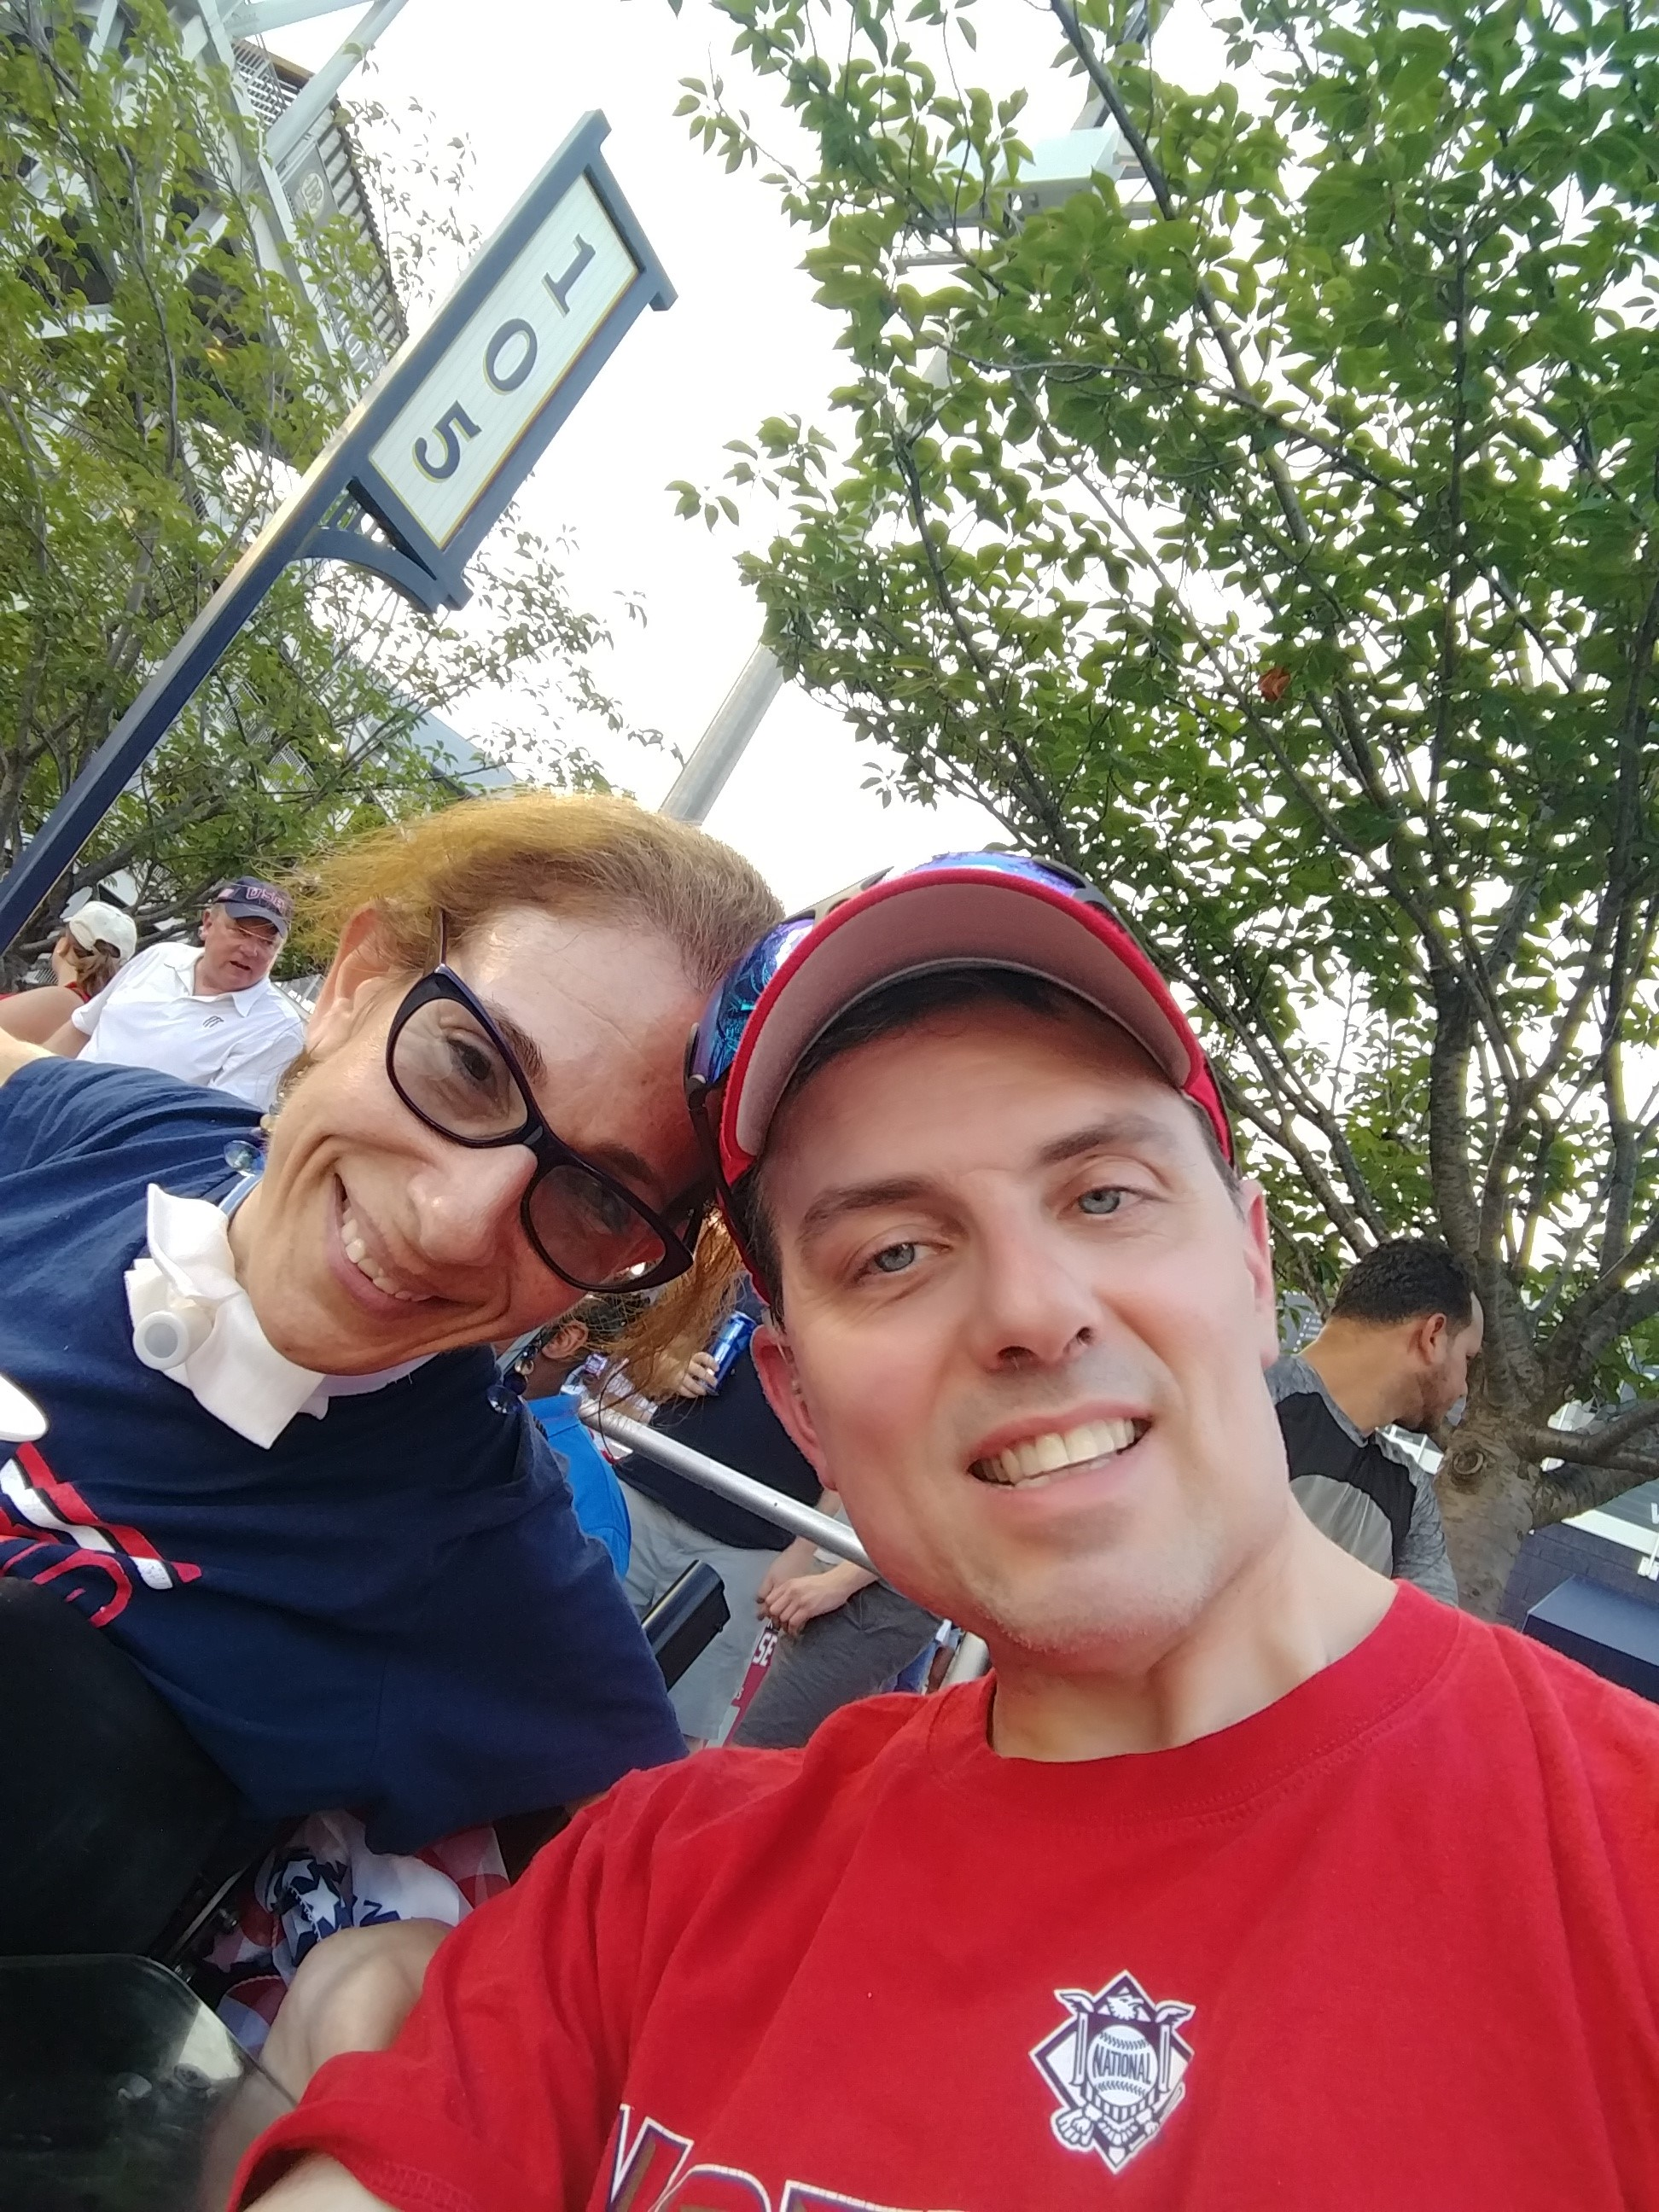 Happy on Wheels at a Nationals game, 2018.